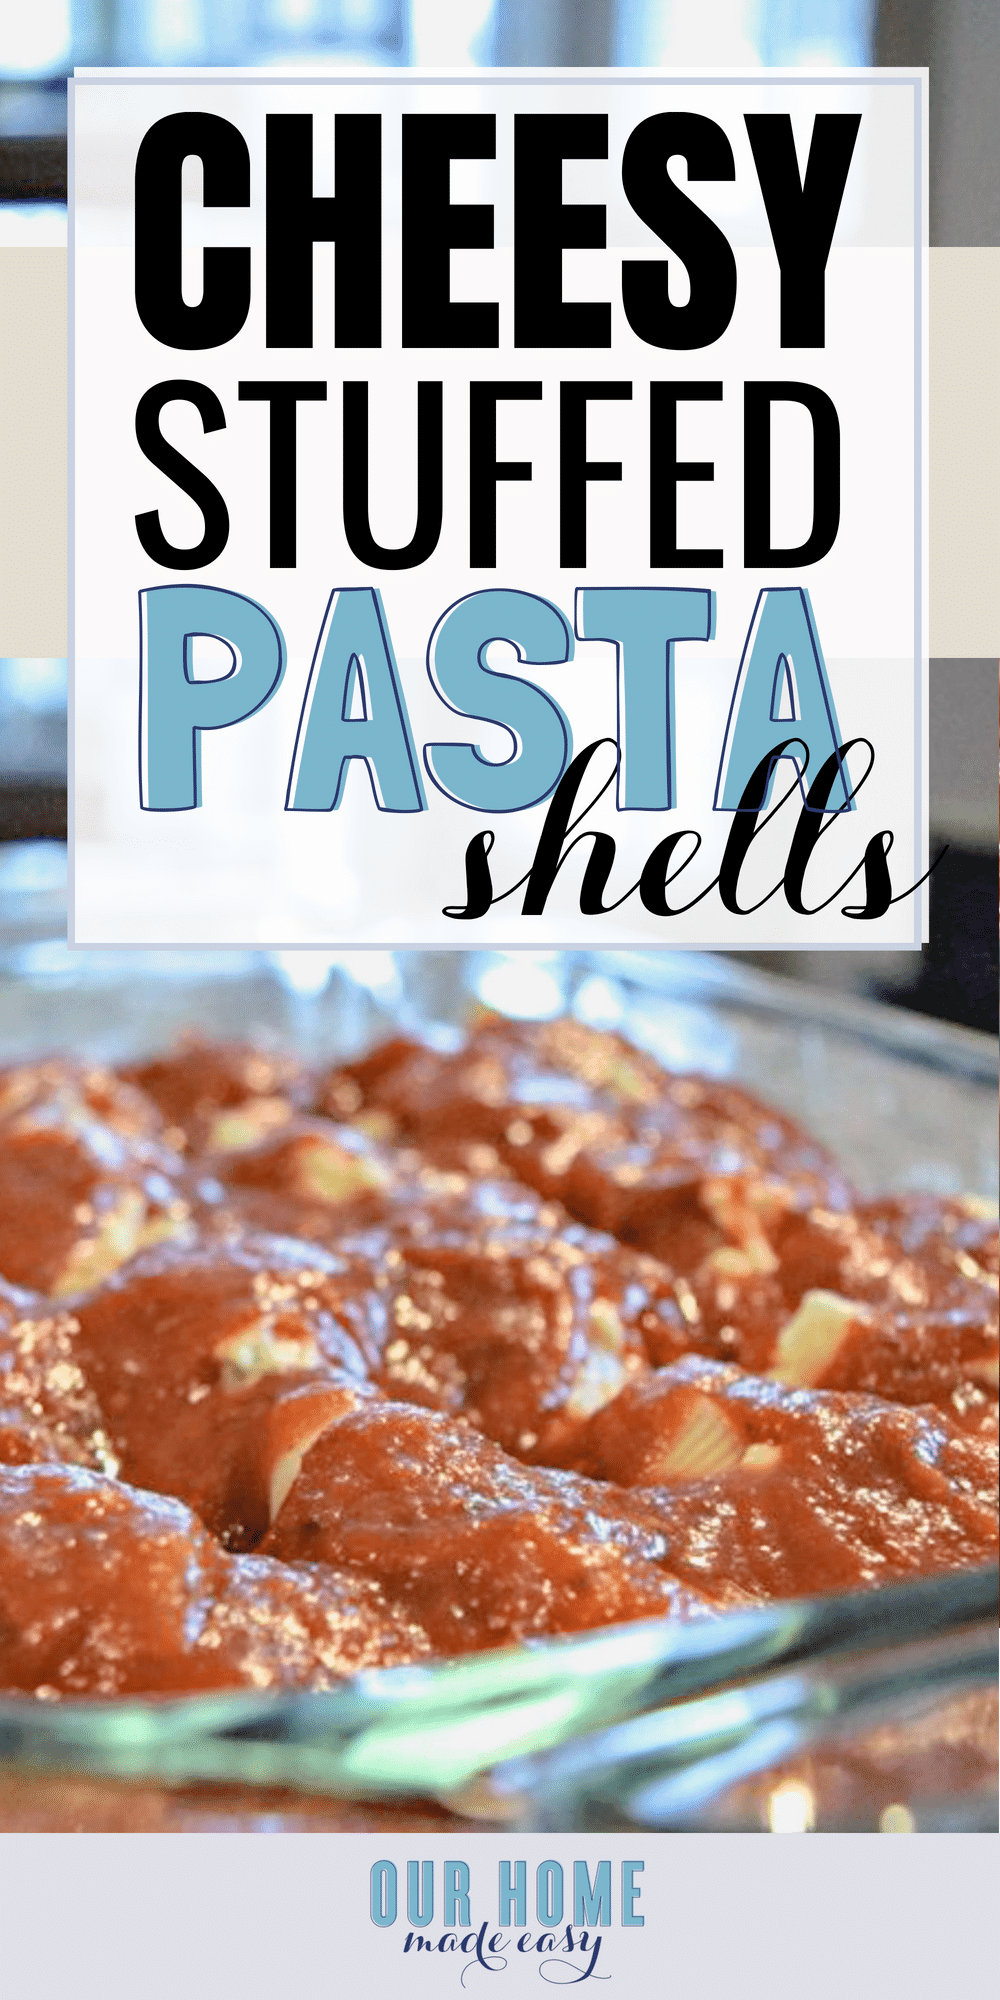 These Cheesy Stuffed Pasta Shells are the perfect family dinner recipe! They are easy to make and you can add in your own favorite toppings! #italian #dinner #recipe #pasta #dinnerrecipe